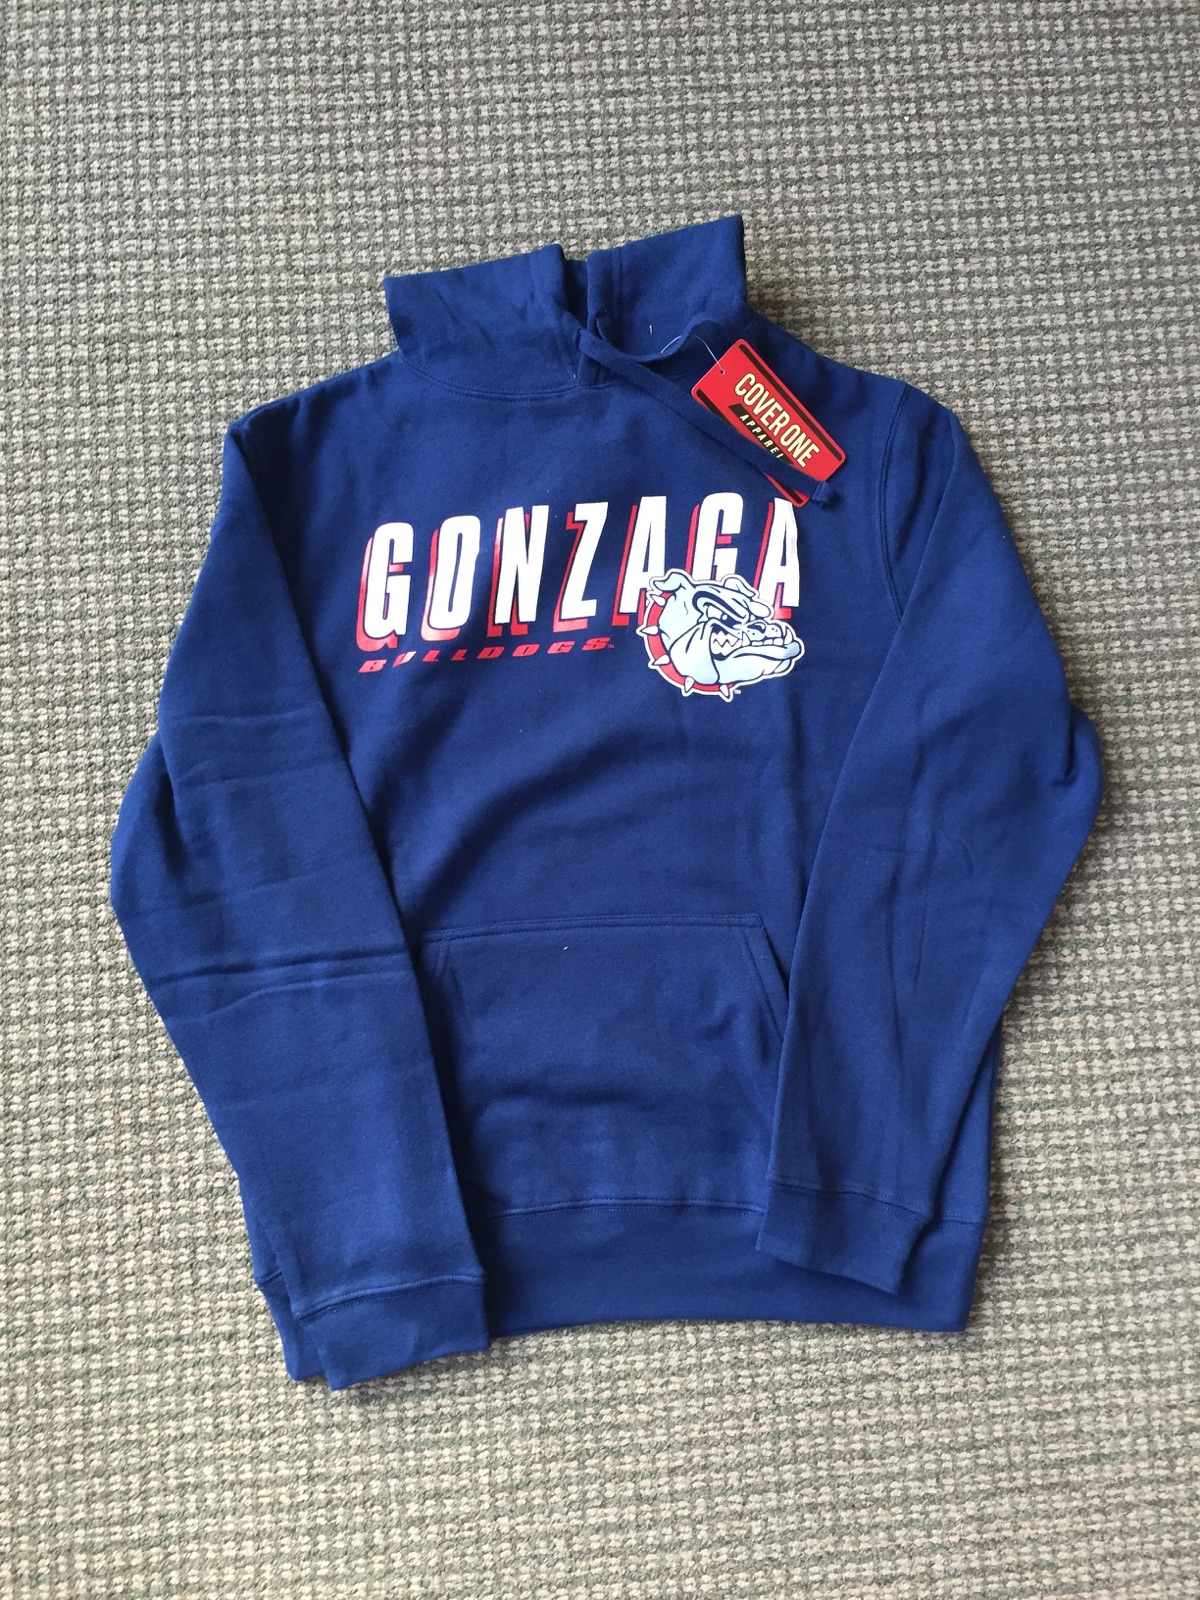 Gonzaga Hooded Sweatshirt Size Large